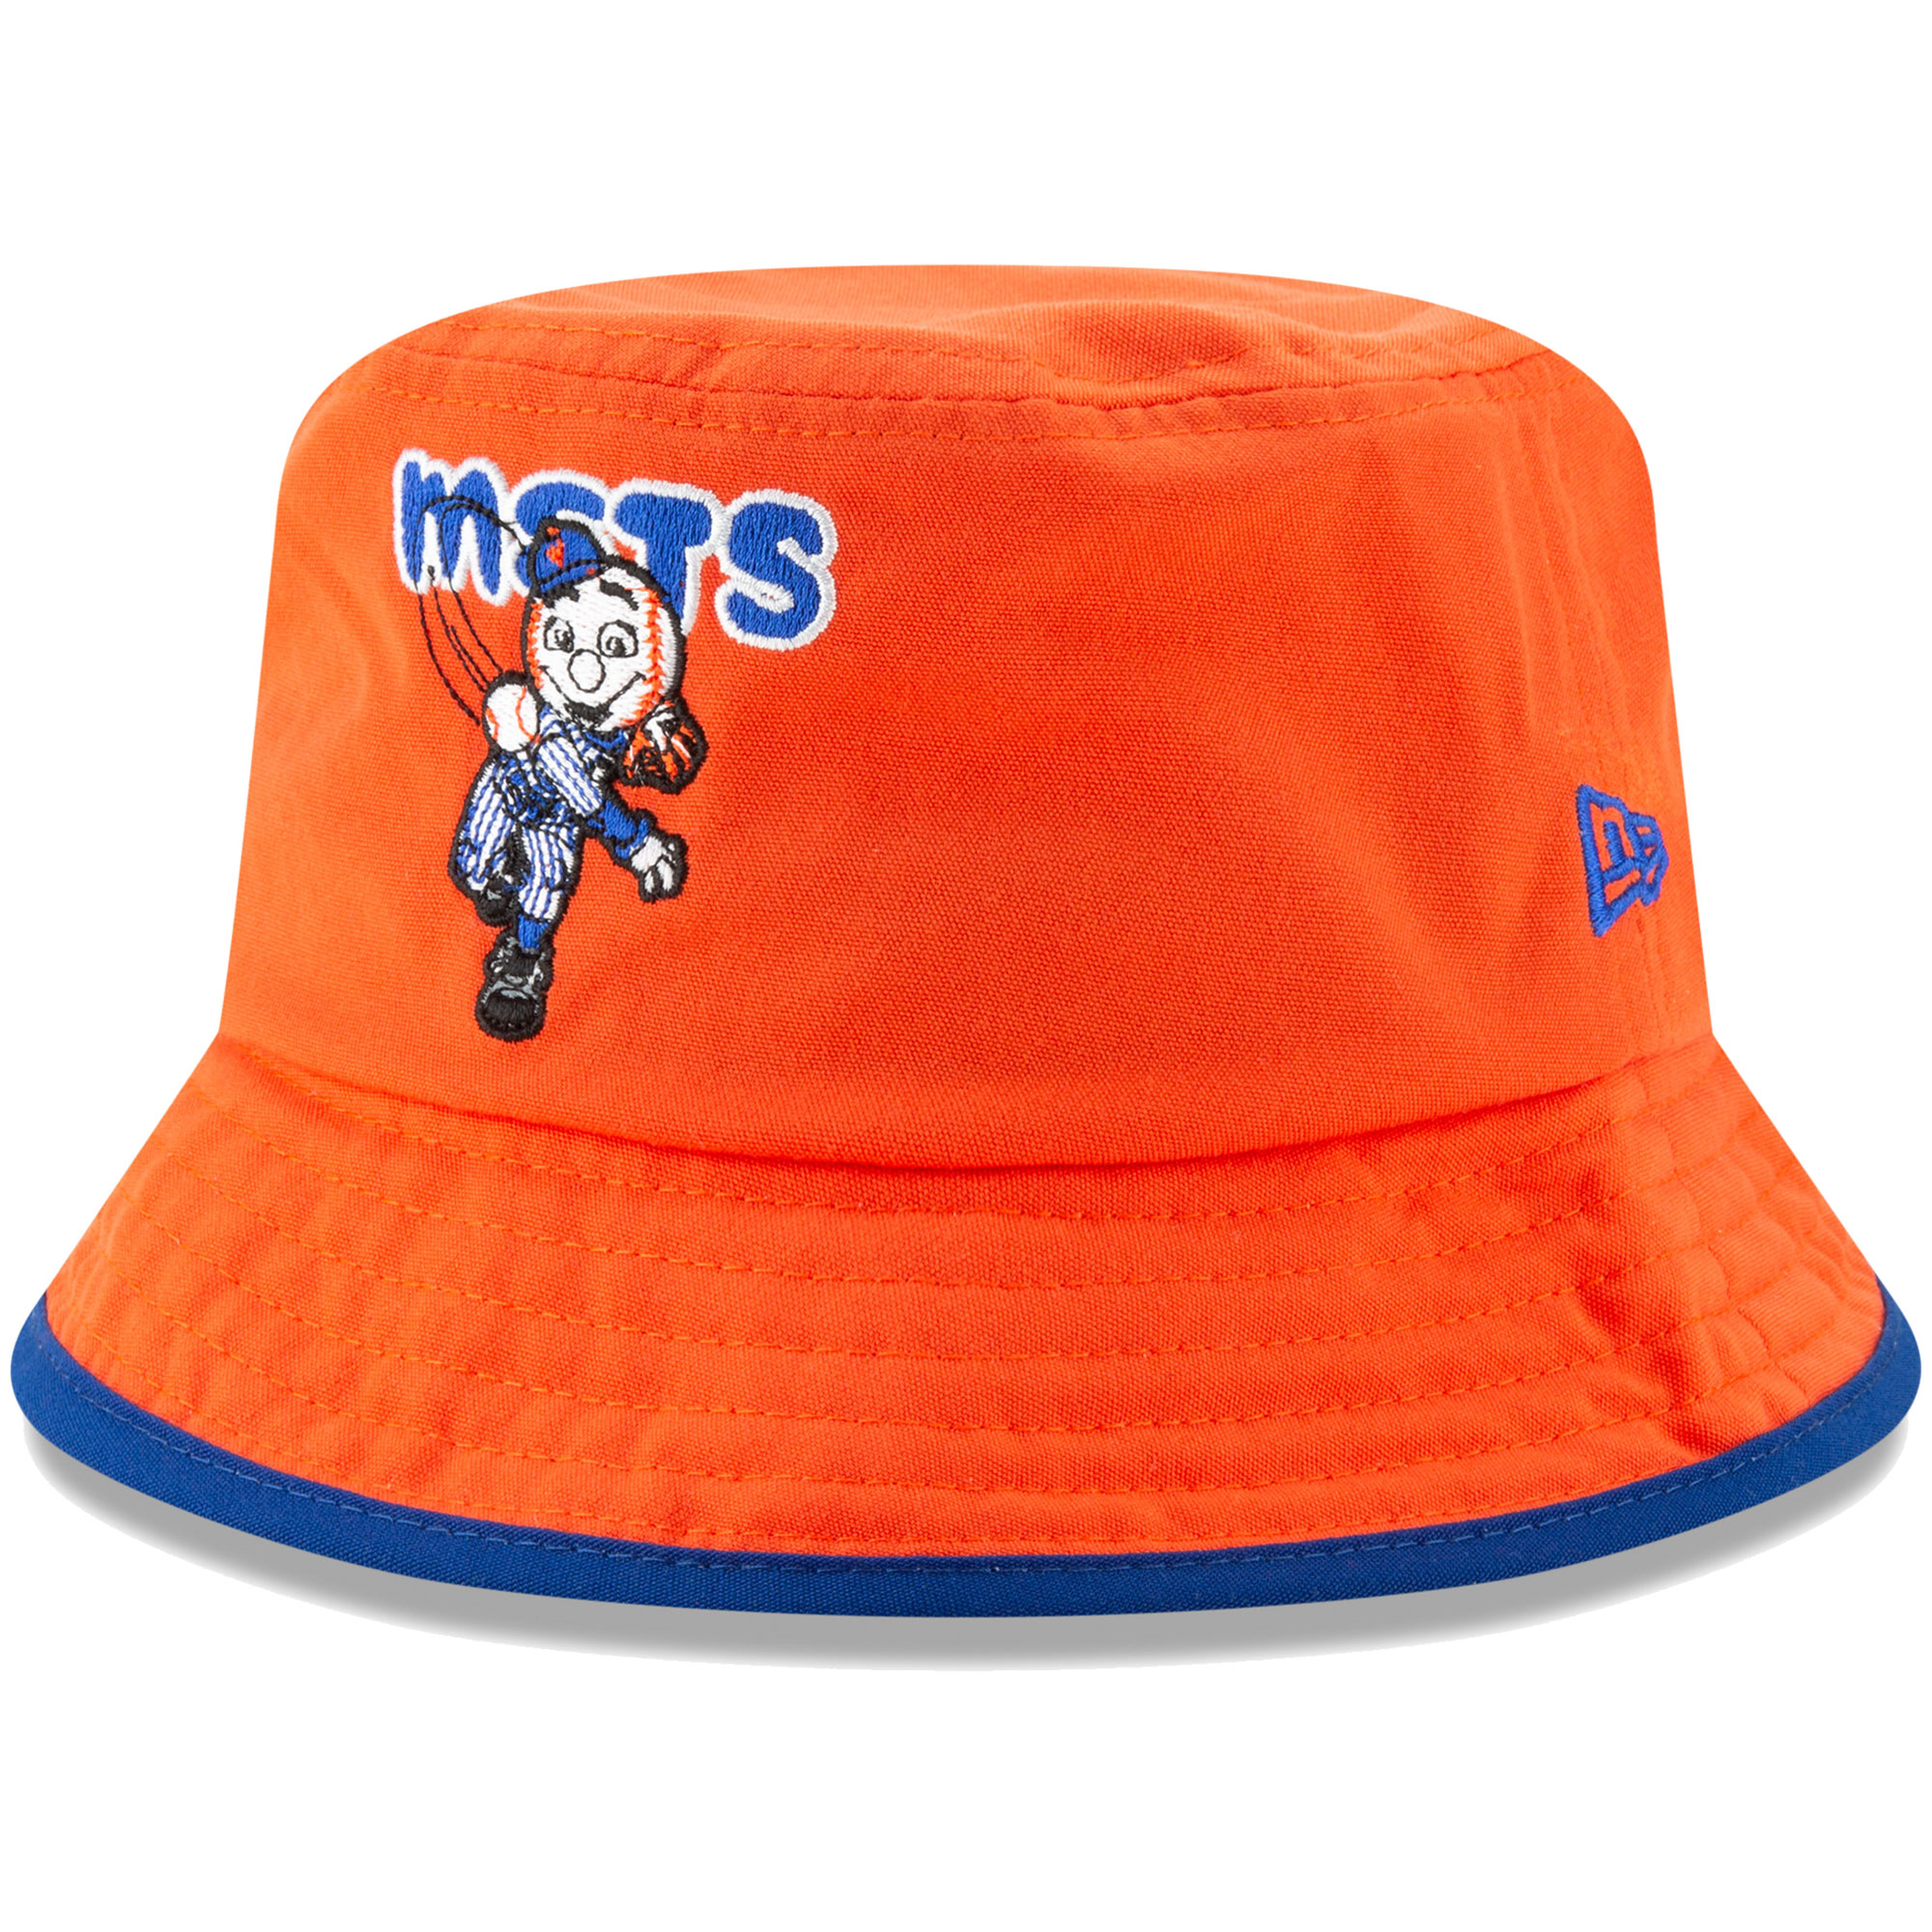 New York Mets New Era Infant Bind Bucket Hat - Orange - OSFA